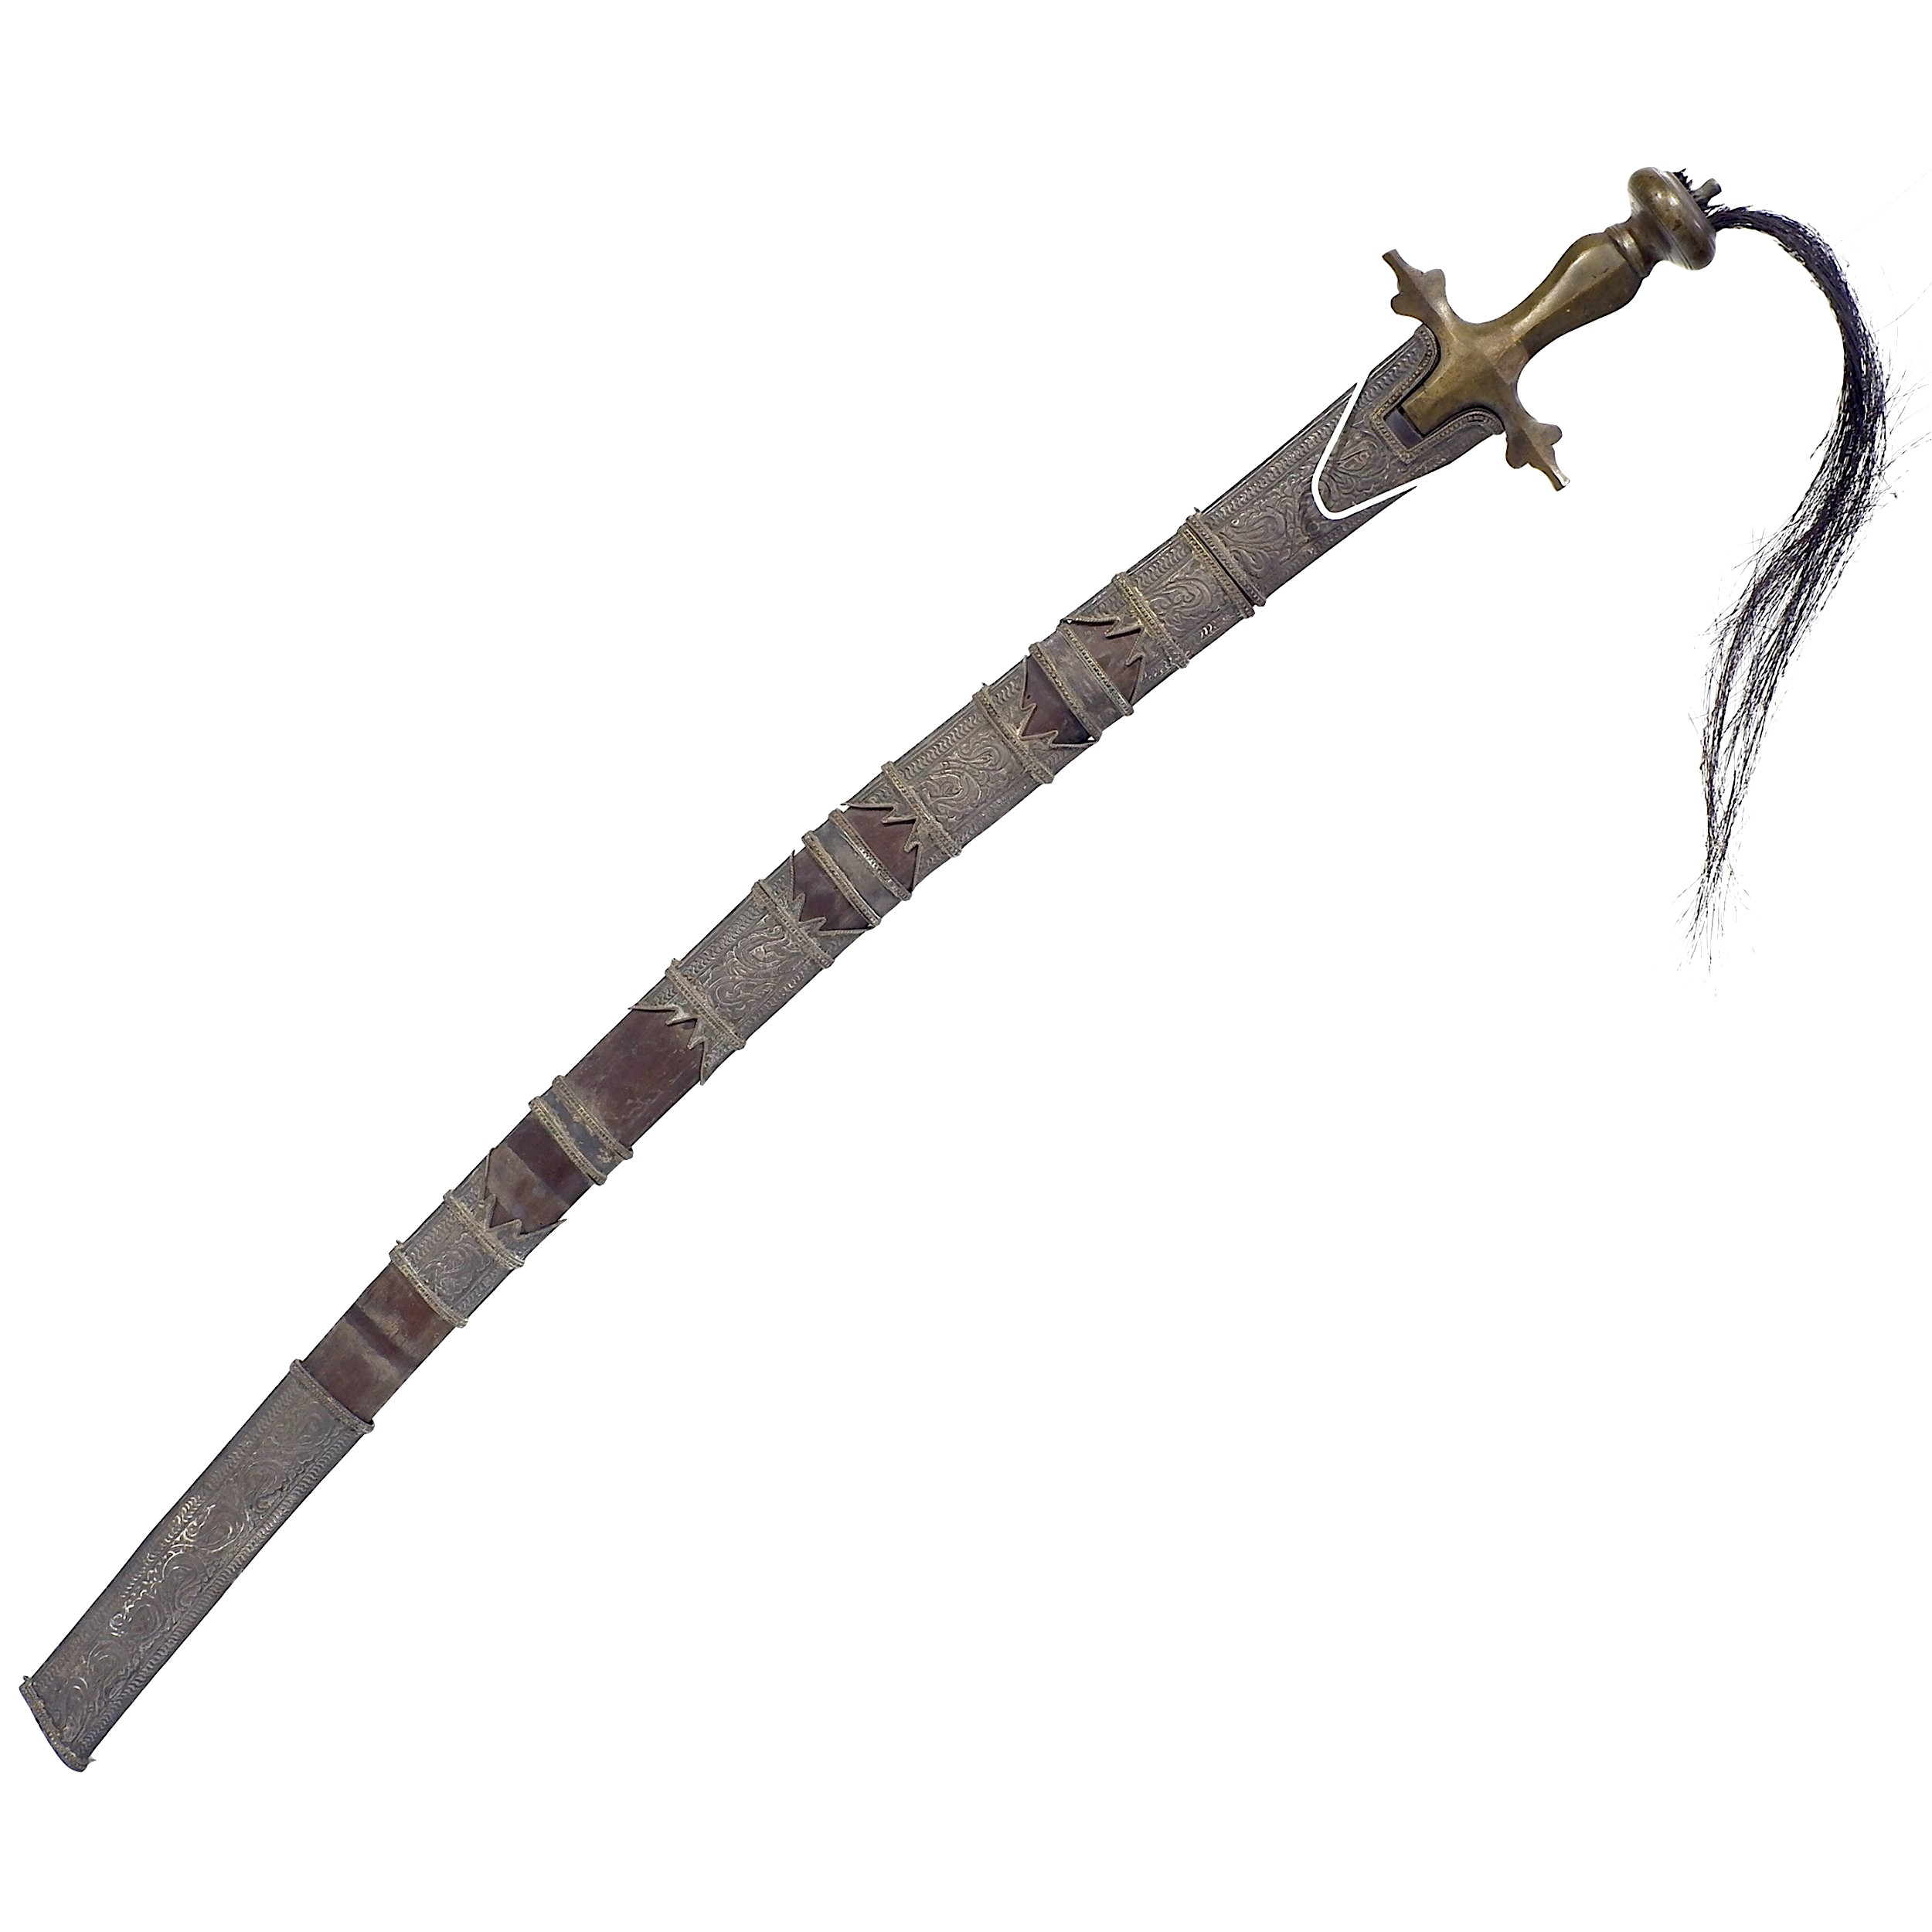 'Piso Podang Sword Borneo or Sumatra 19th Century'